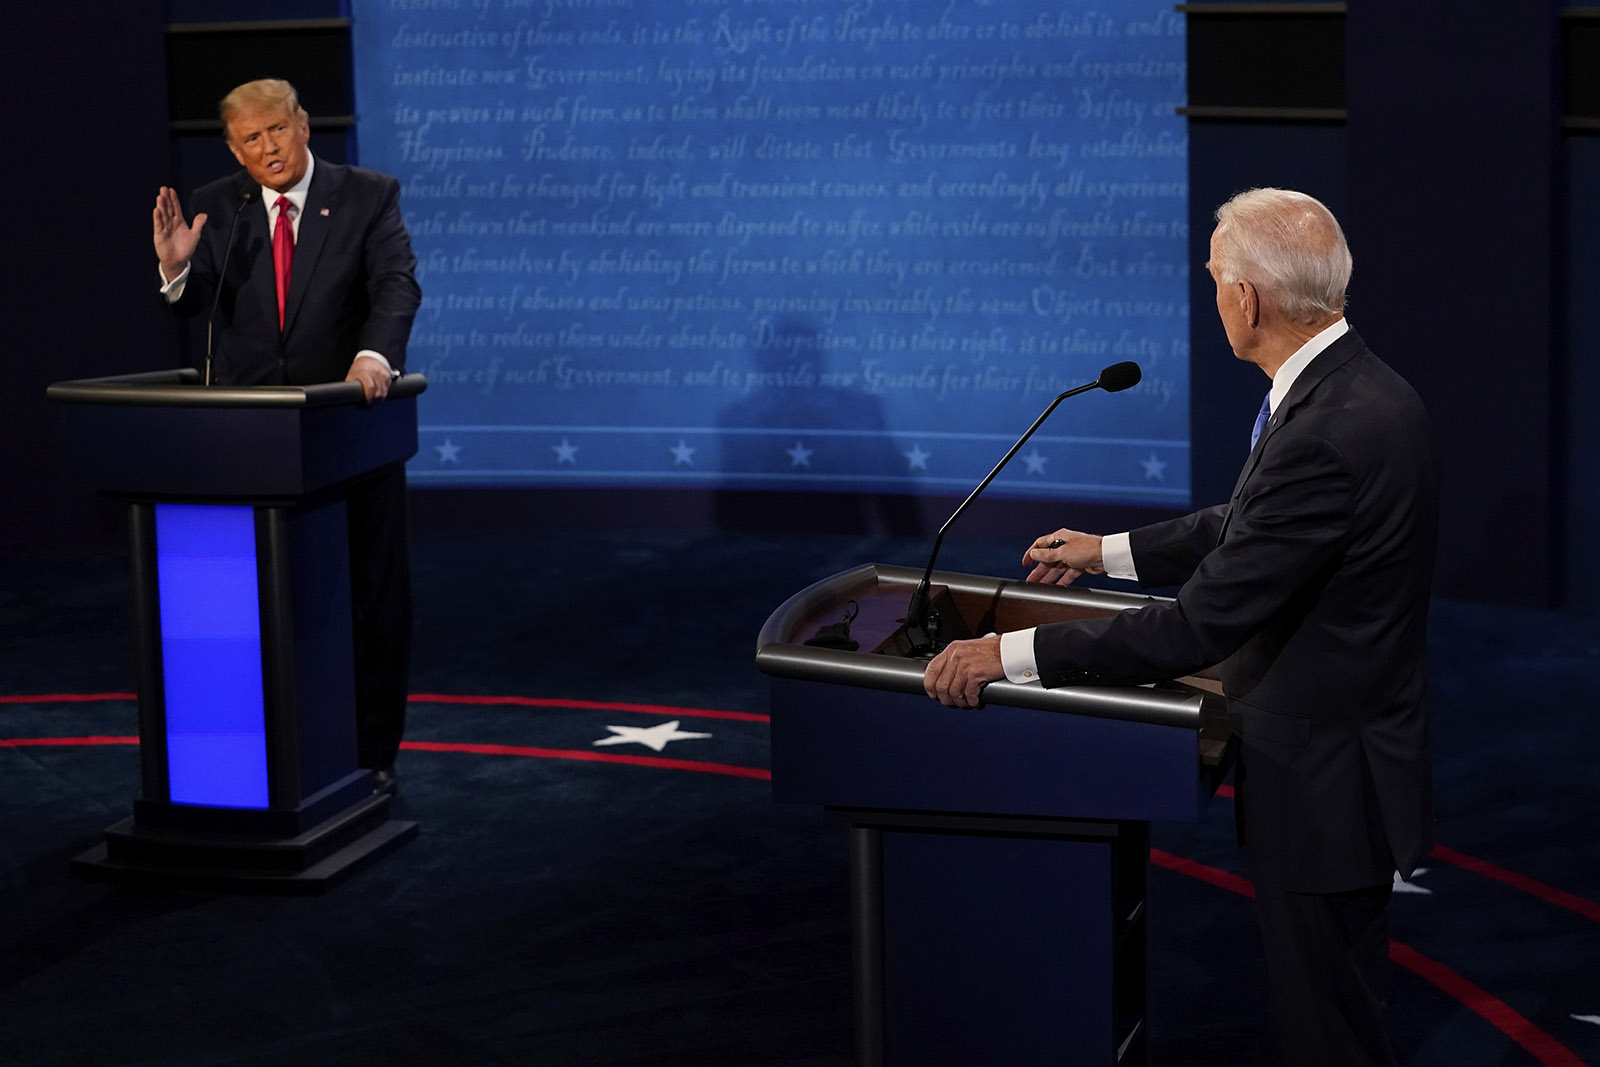 President Donald Trump answers a question as Democratic presidential candidate Joe Biden listens during the second and final presidential debate on Thursday in Nashville.